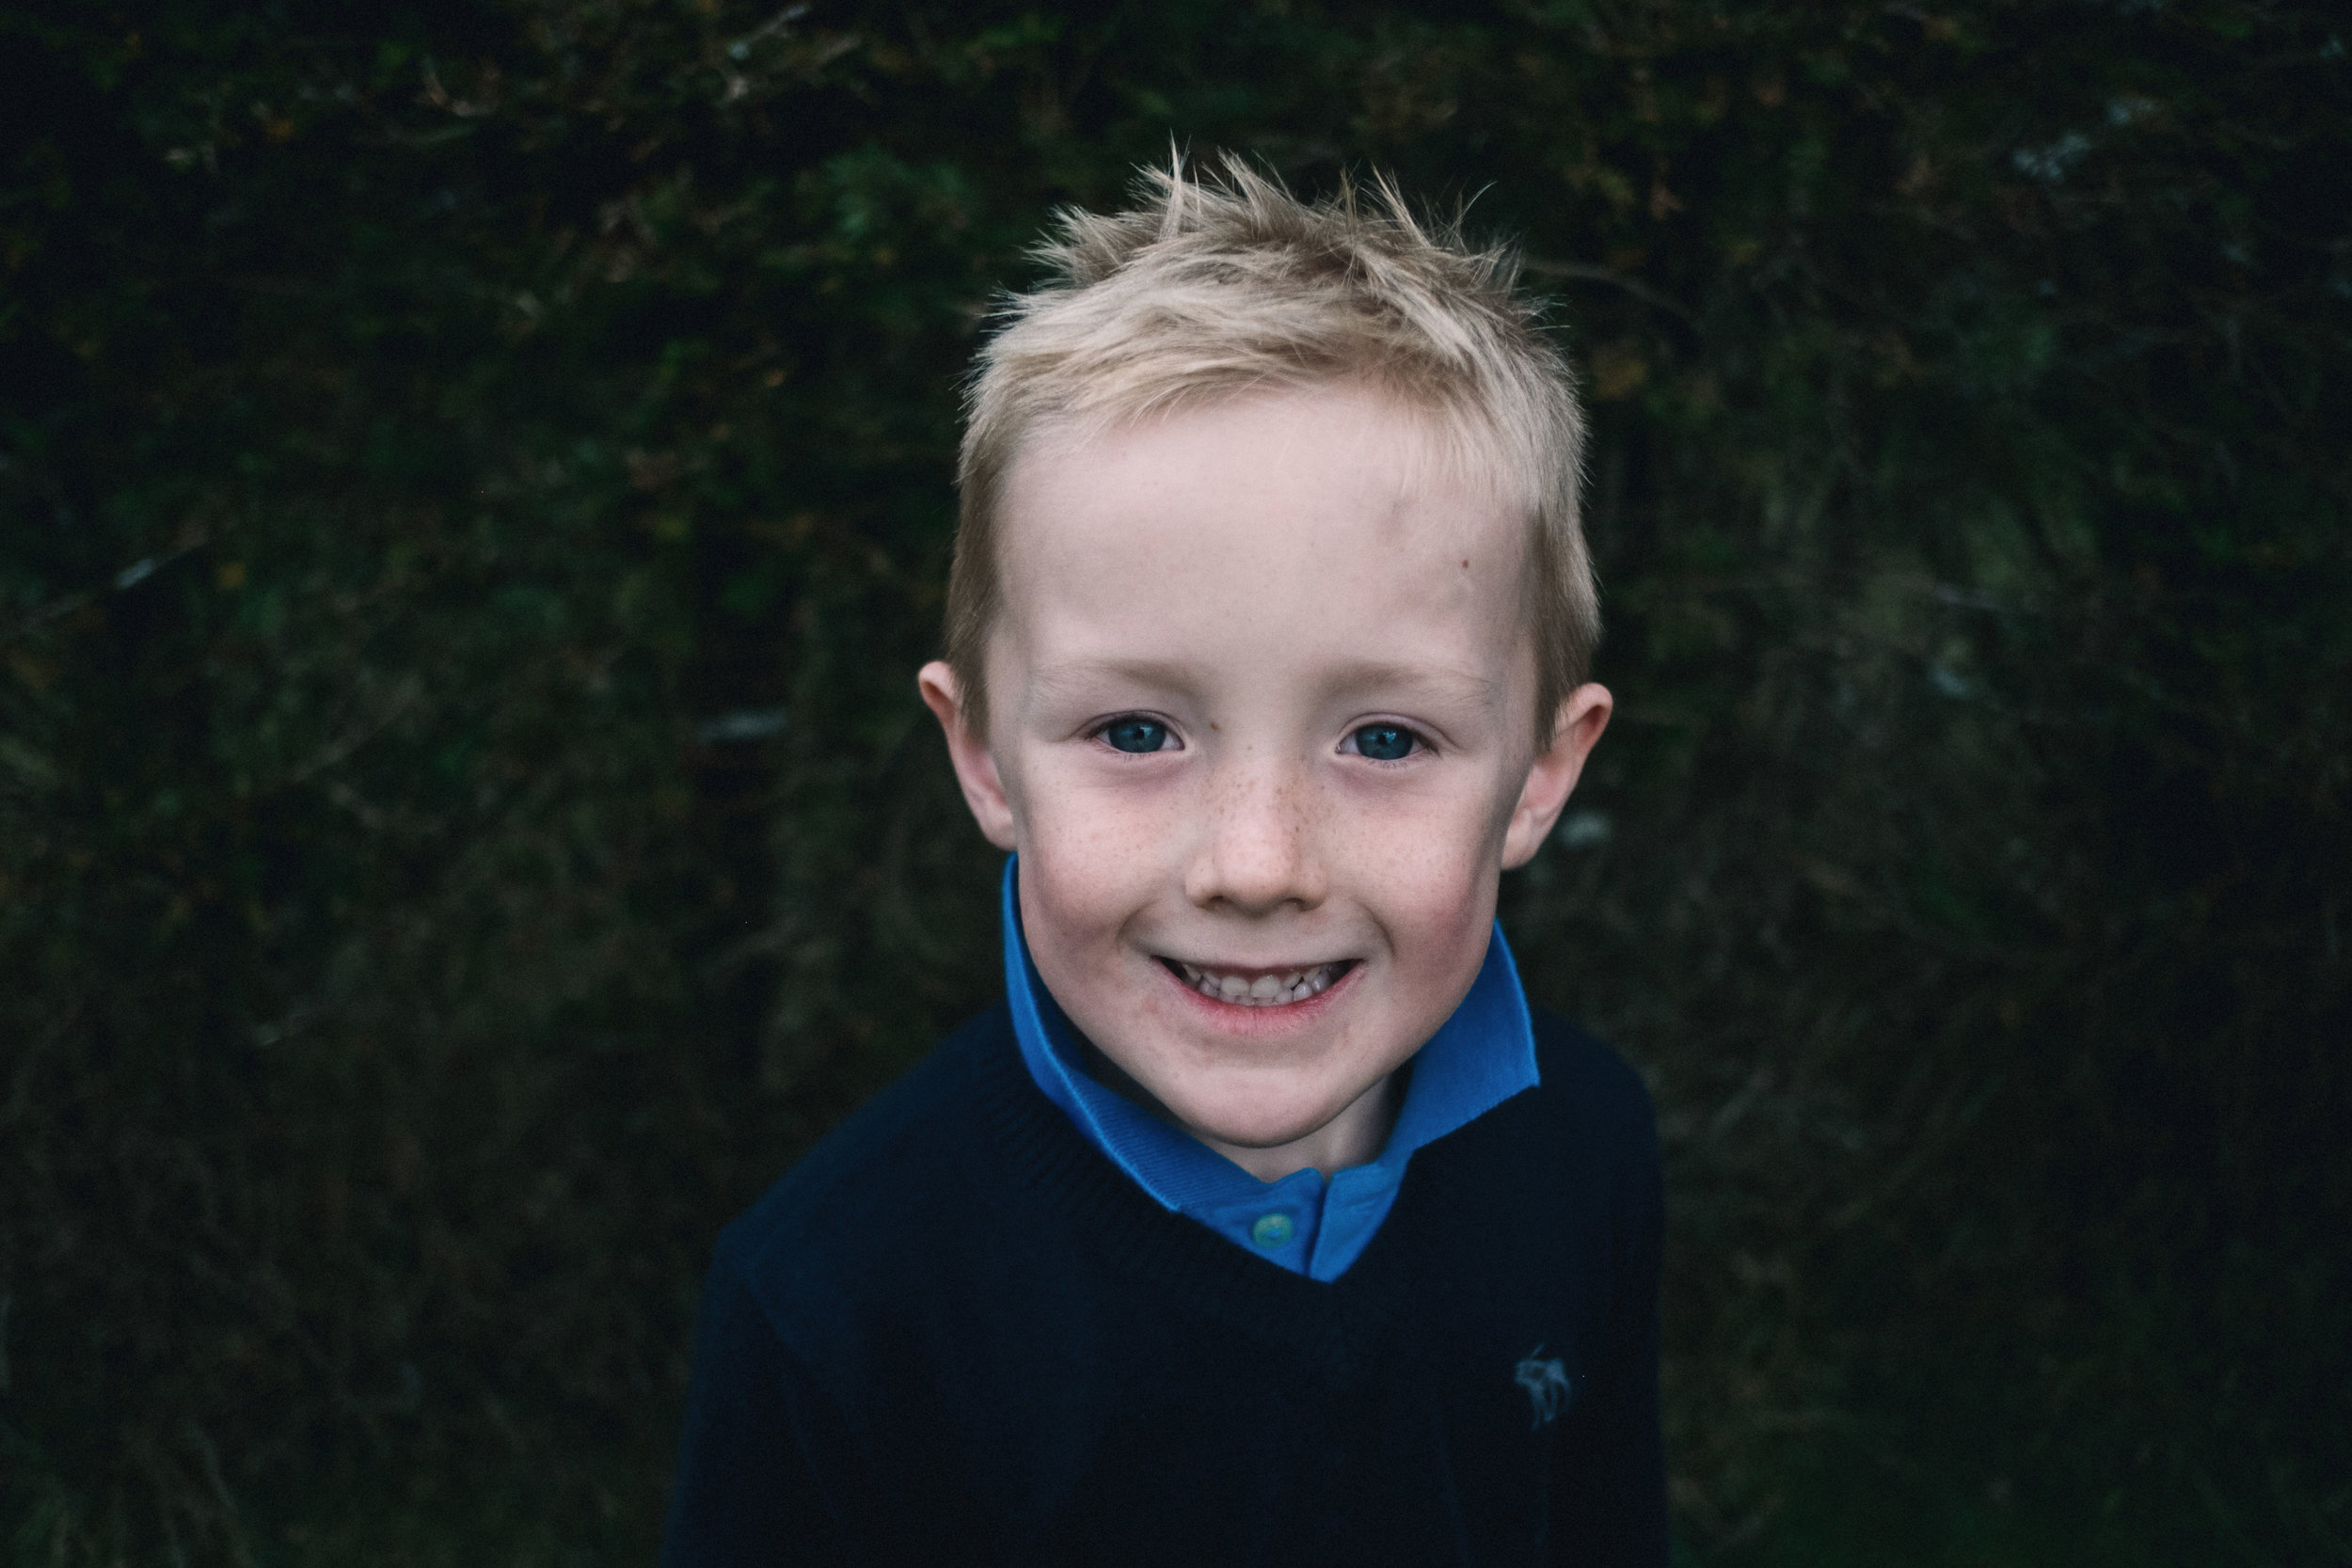 Head shot of a young boy